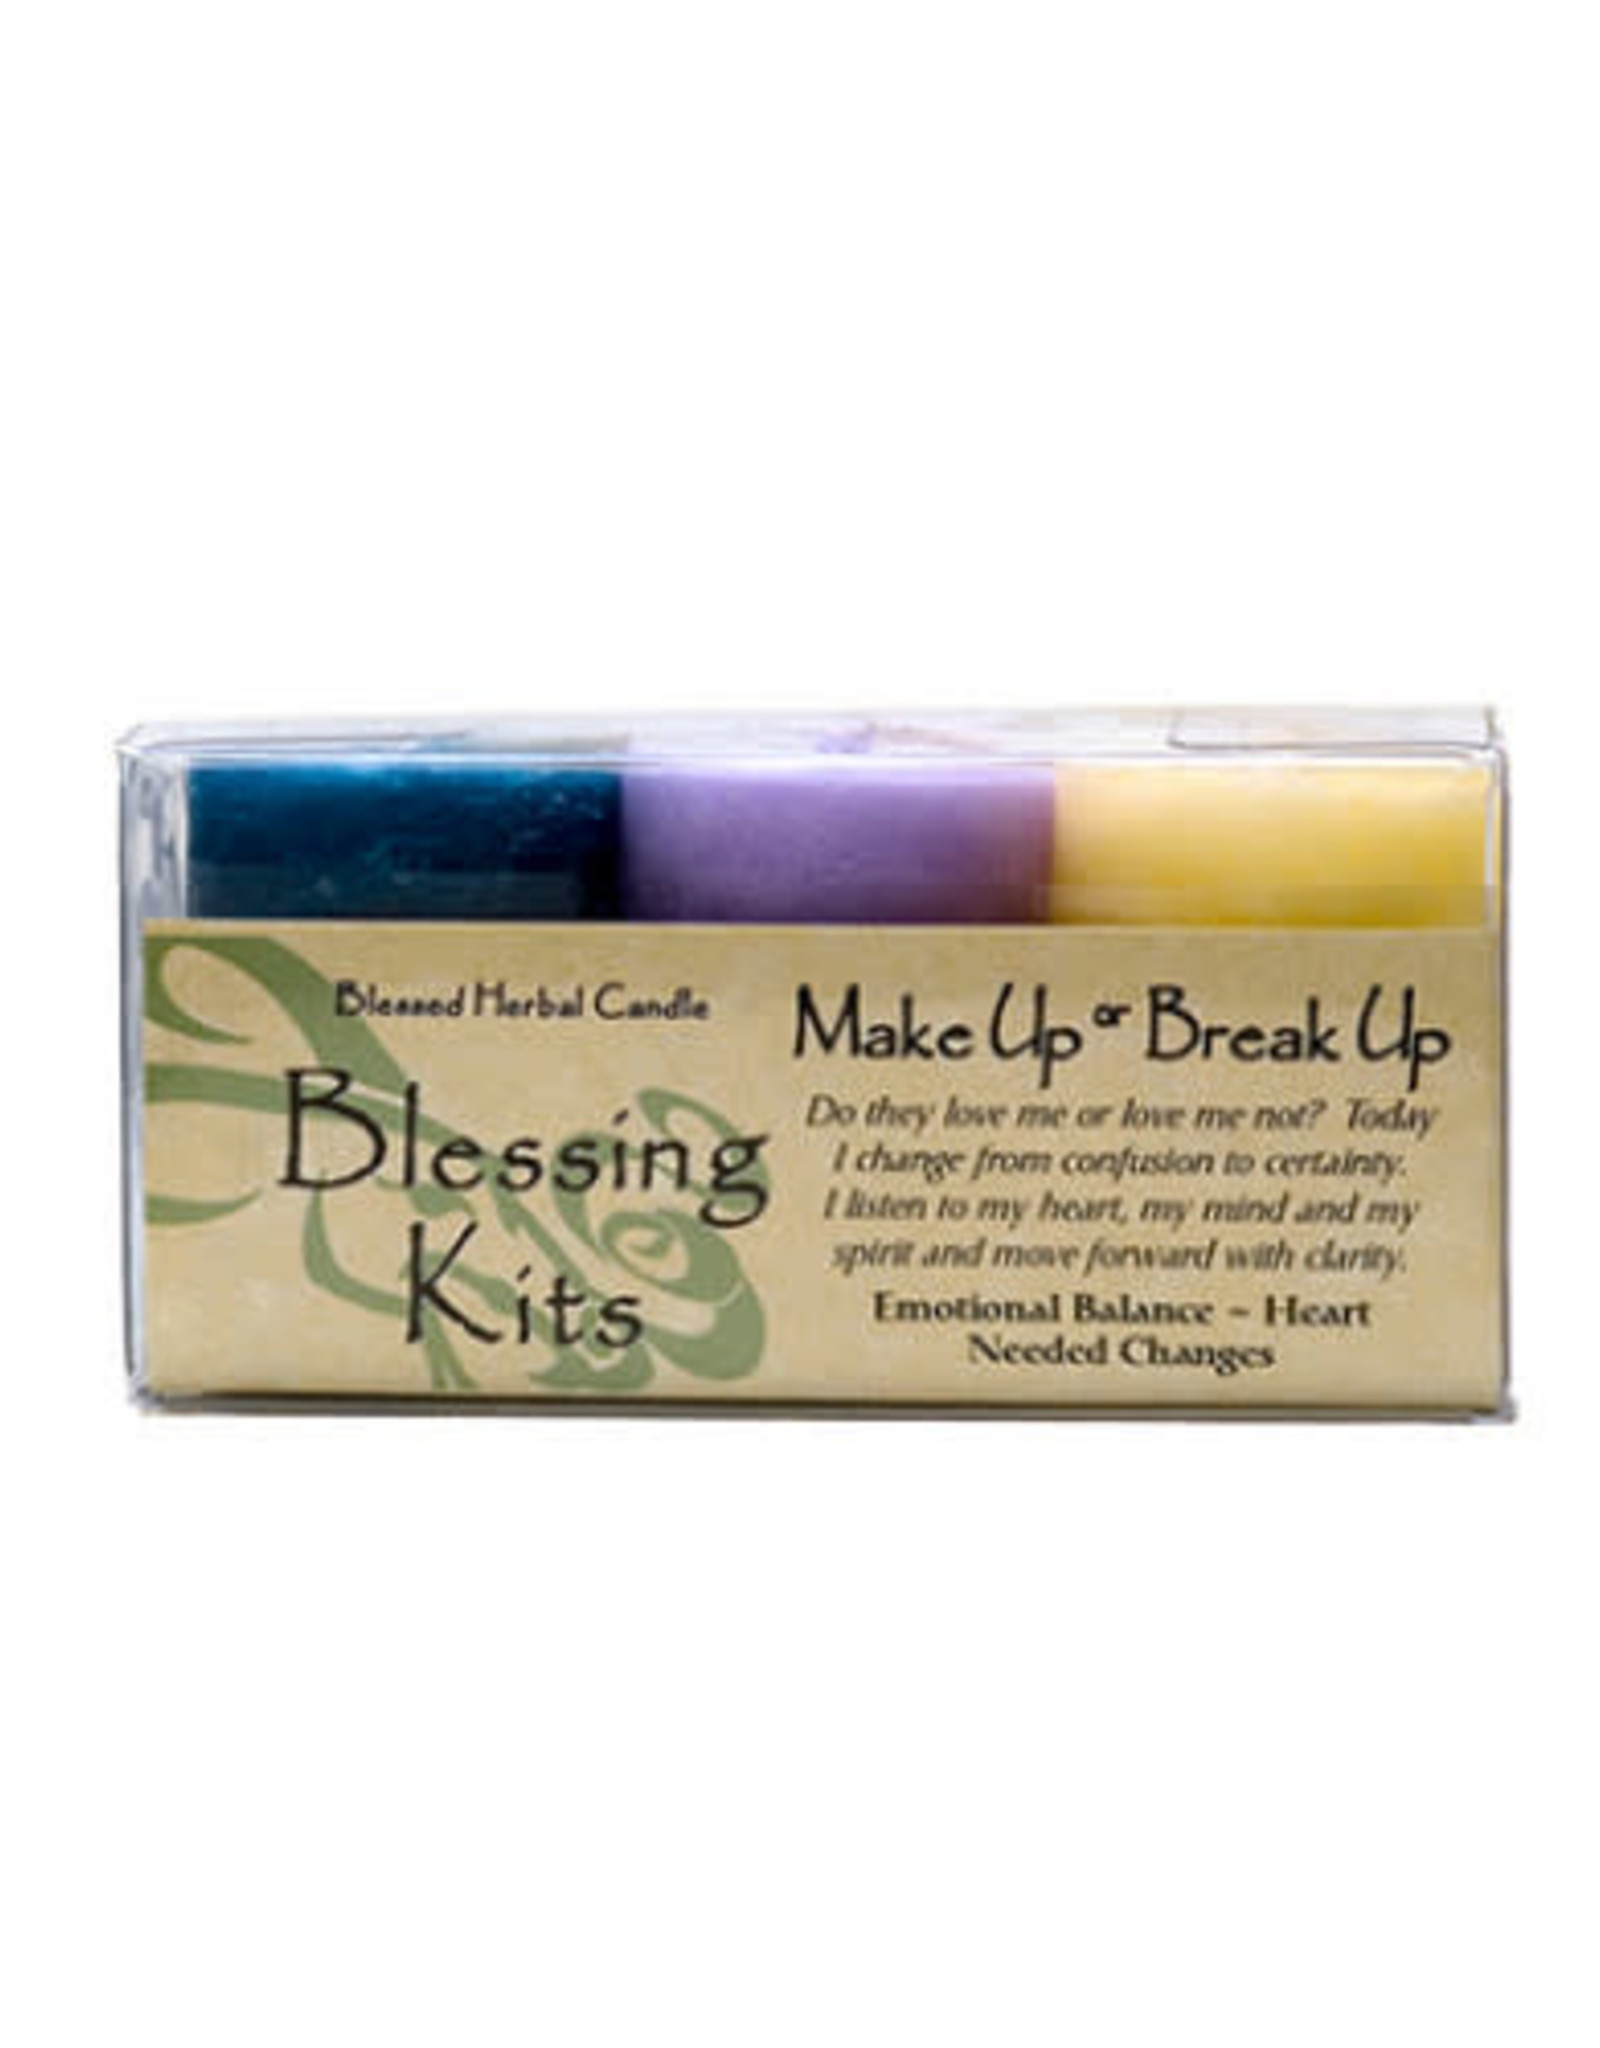 Make Up or Break Up Candle Kit